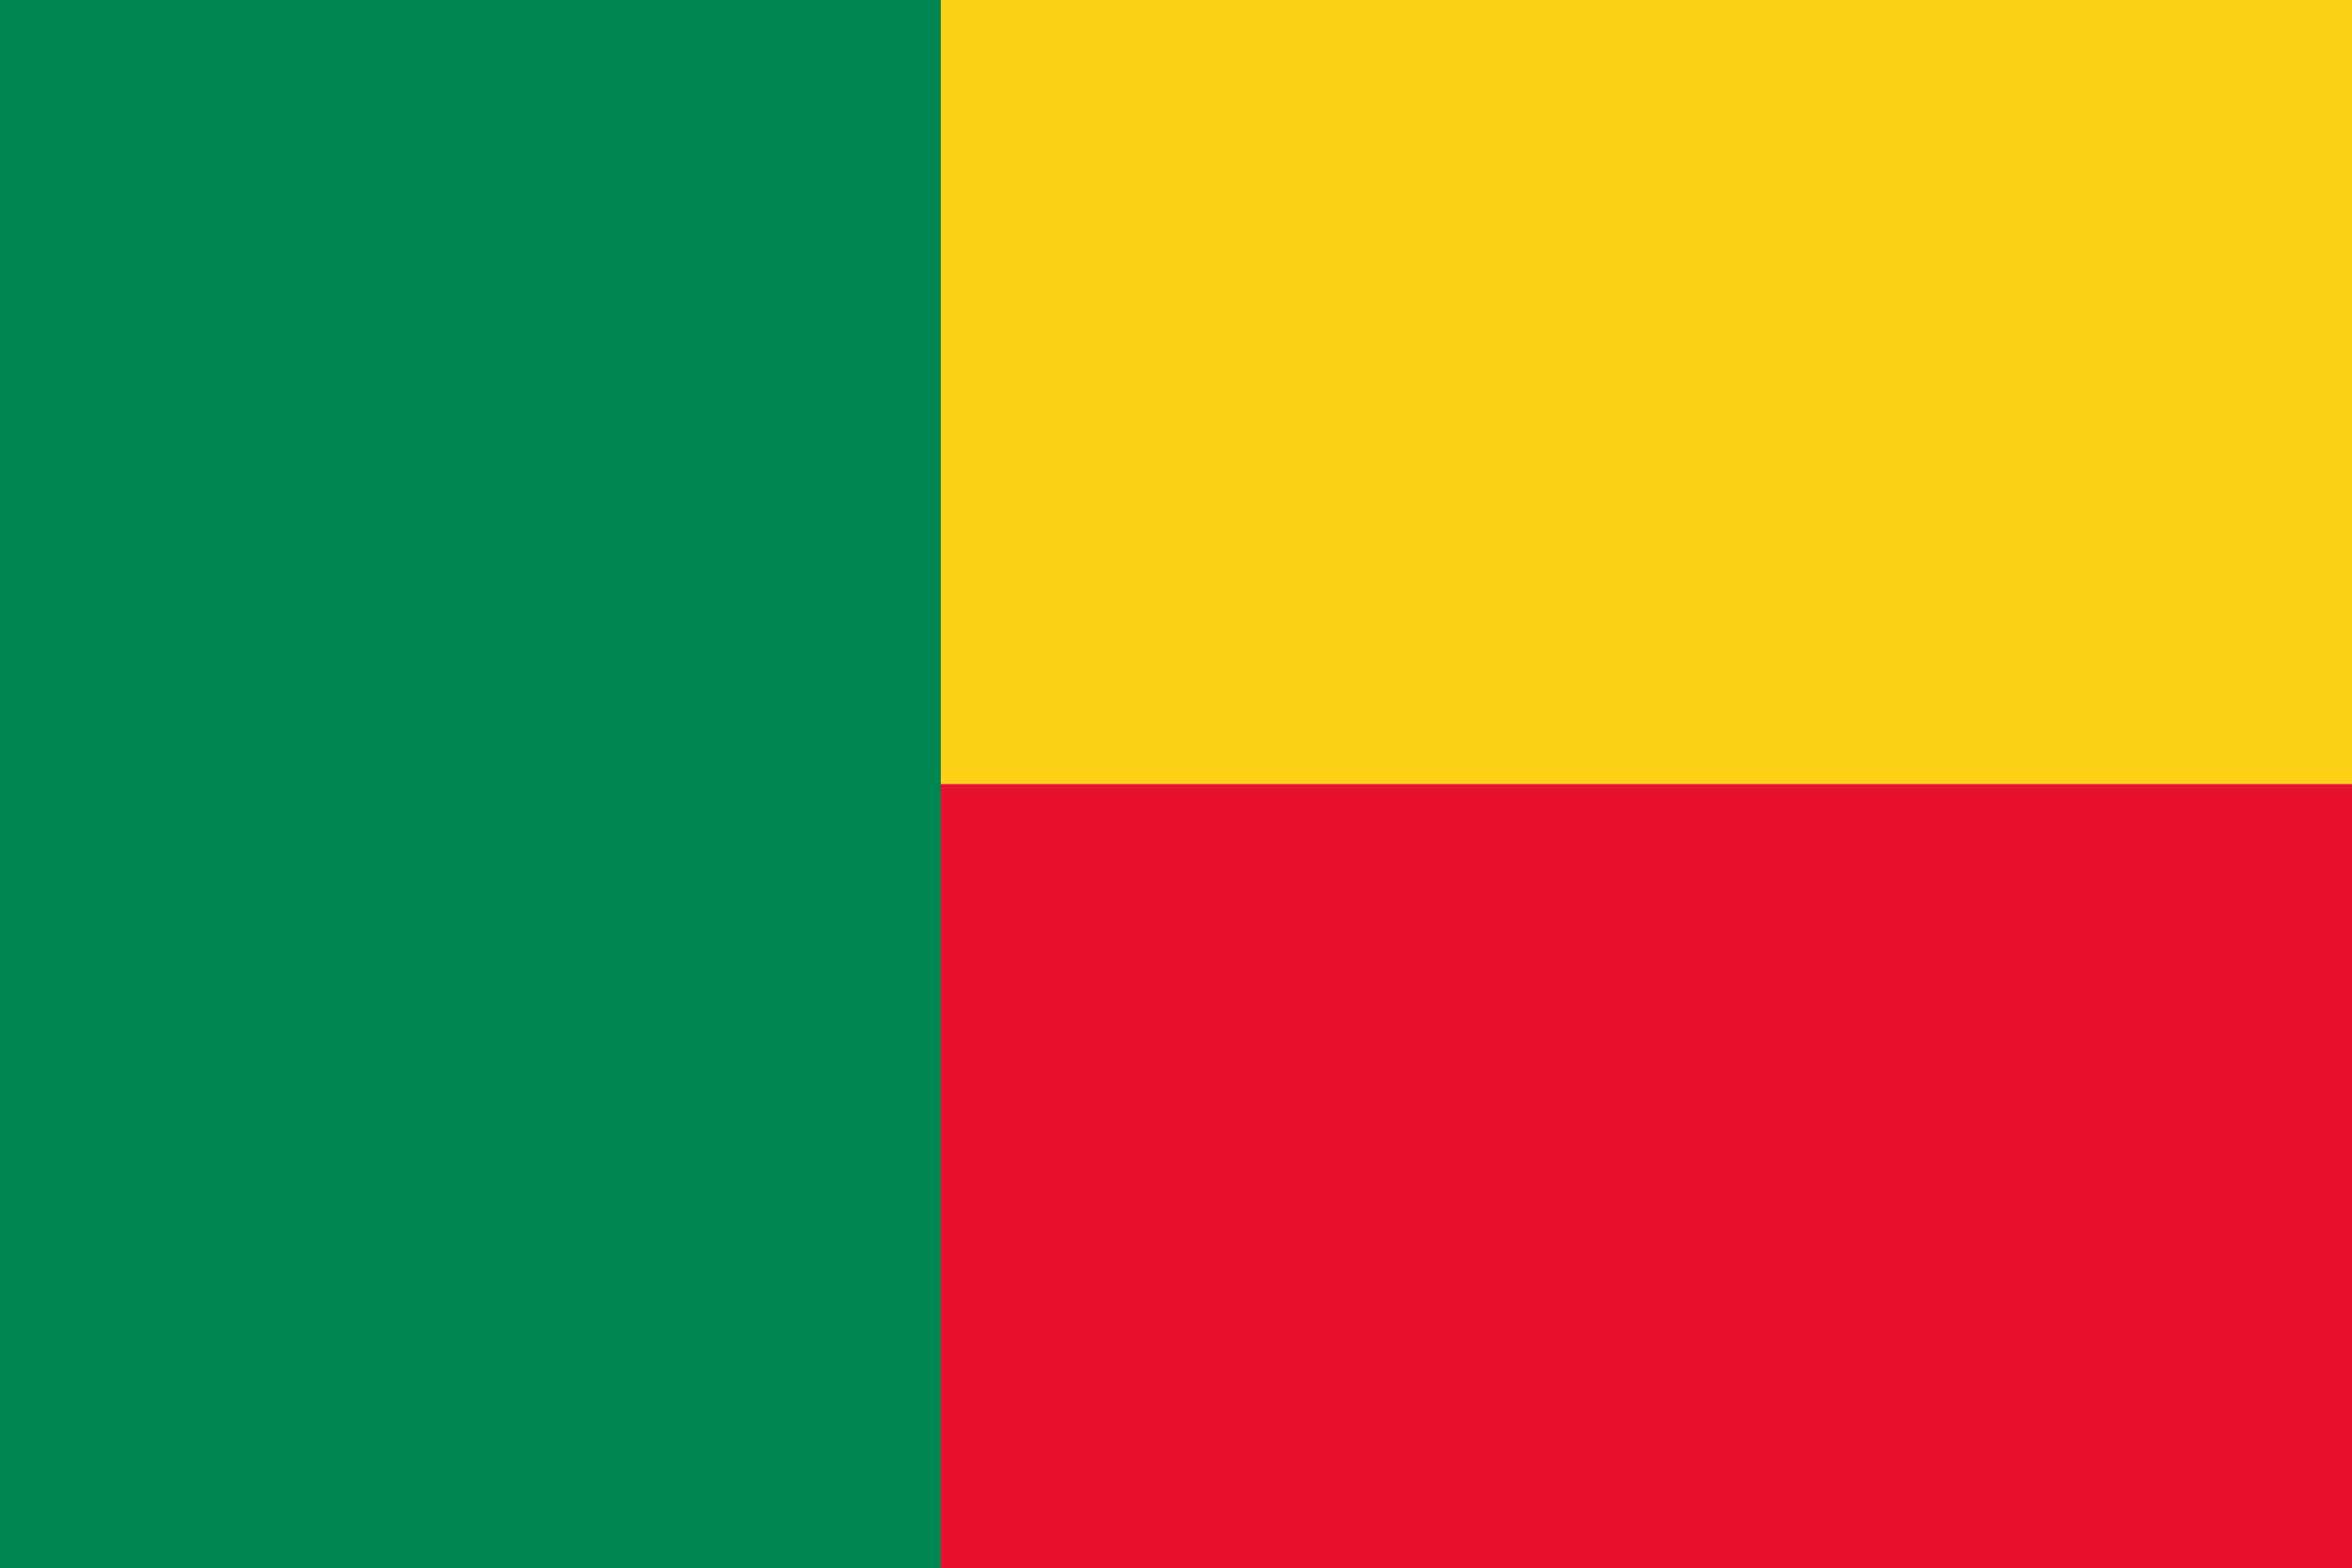 Flag of Benin Wikipedia